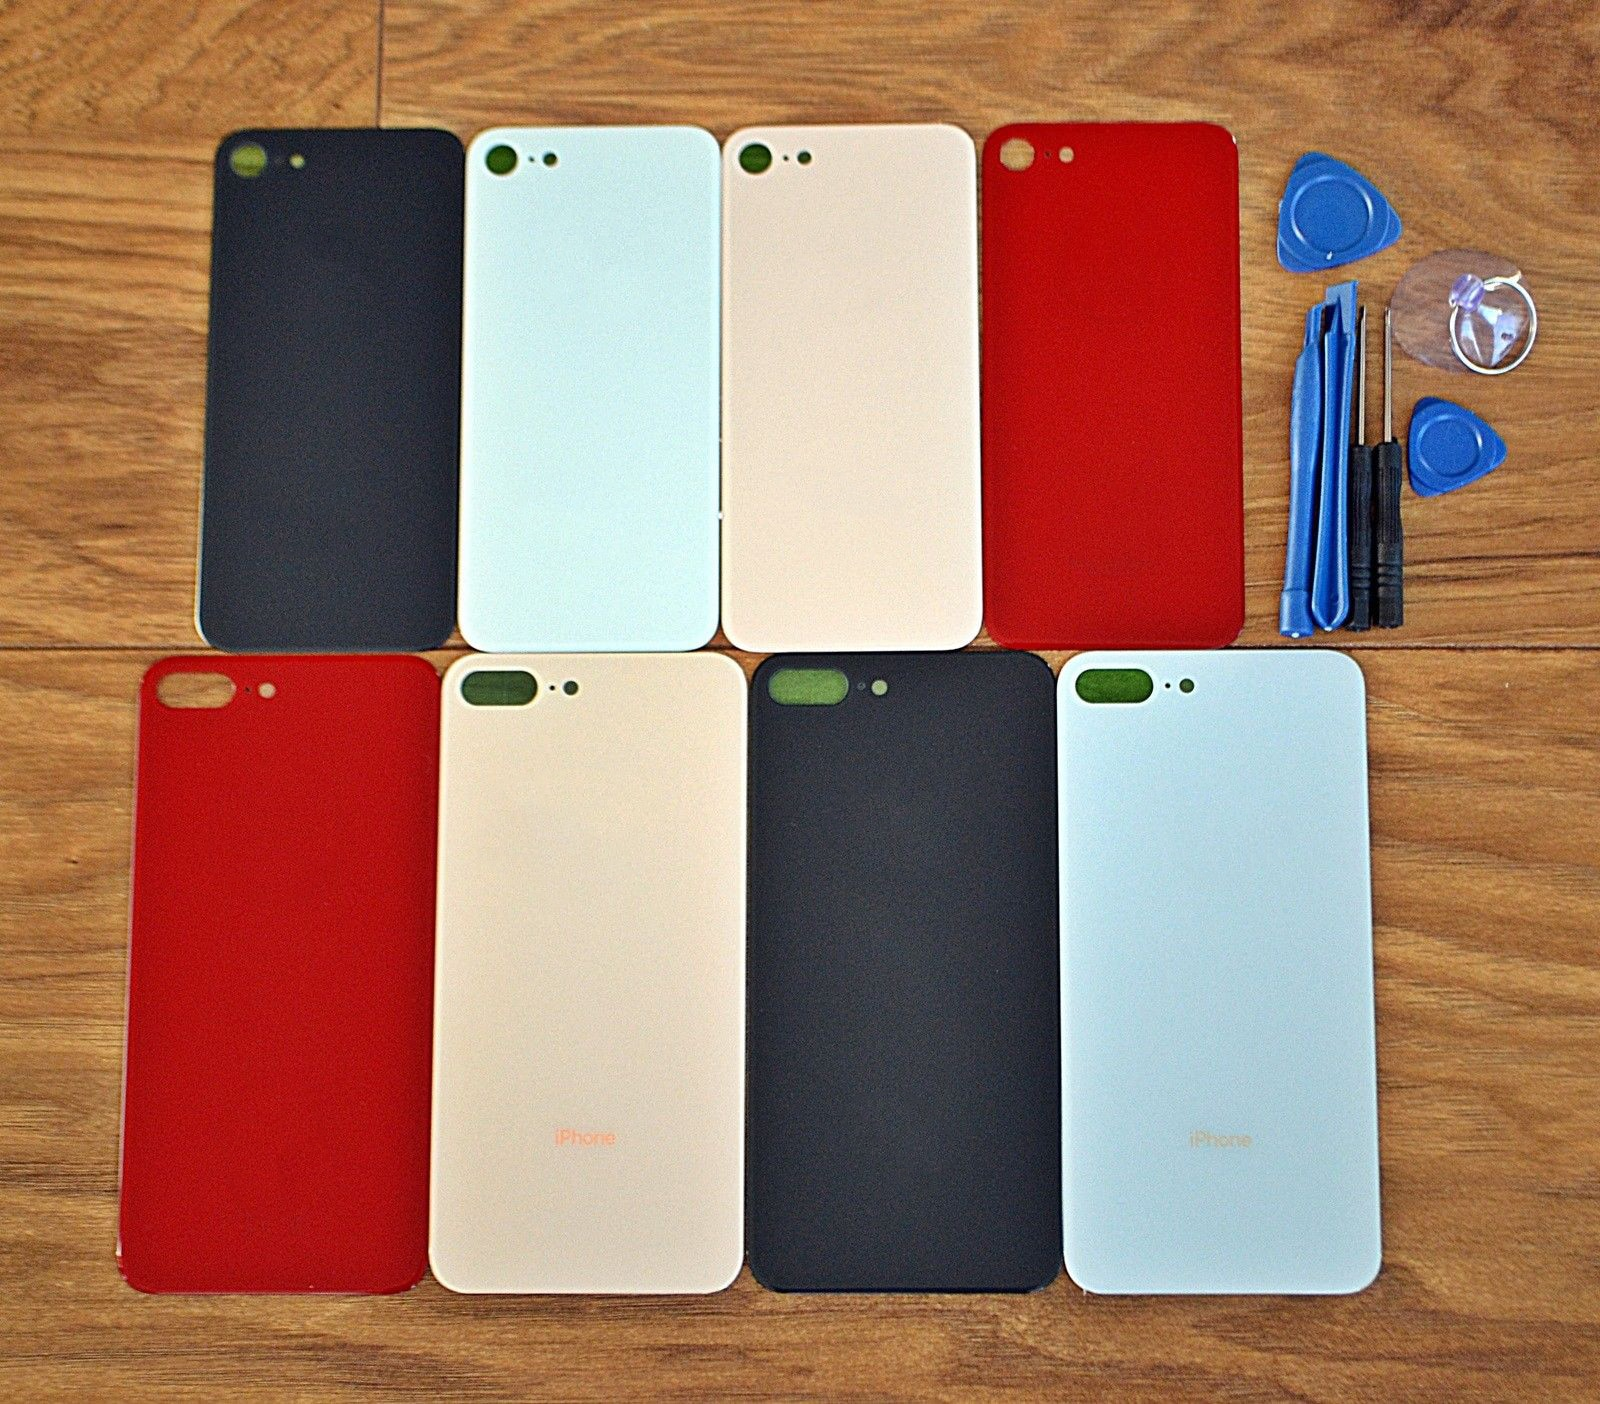 50 PCS For Apple iPhone 8 / 8 Plus High Quality Battery Cover Rear Back Housing cover Glass For iphone 8 4.7'' or 8 Plus 5.5'' enlarge